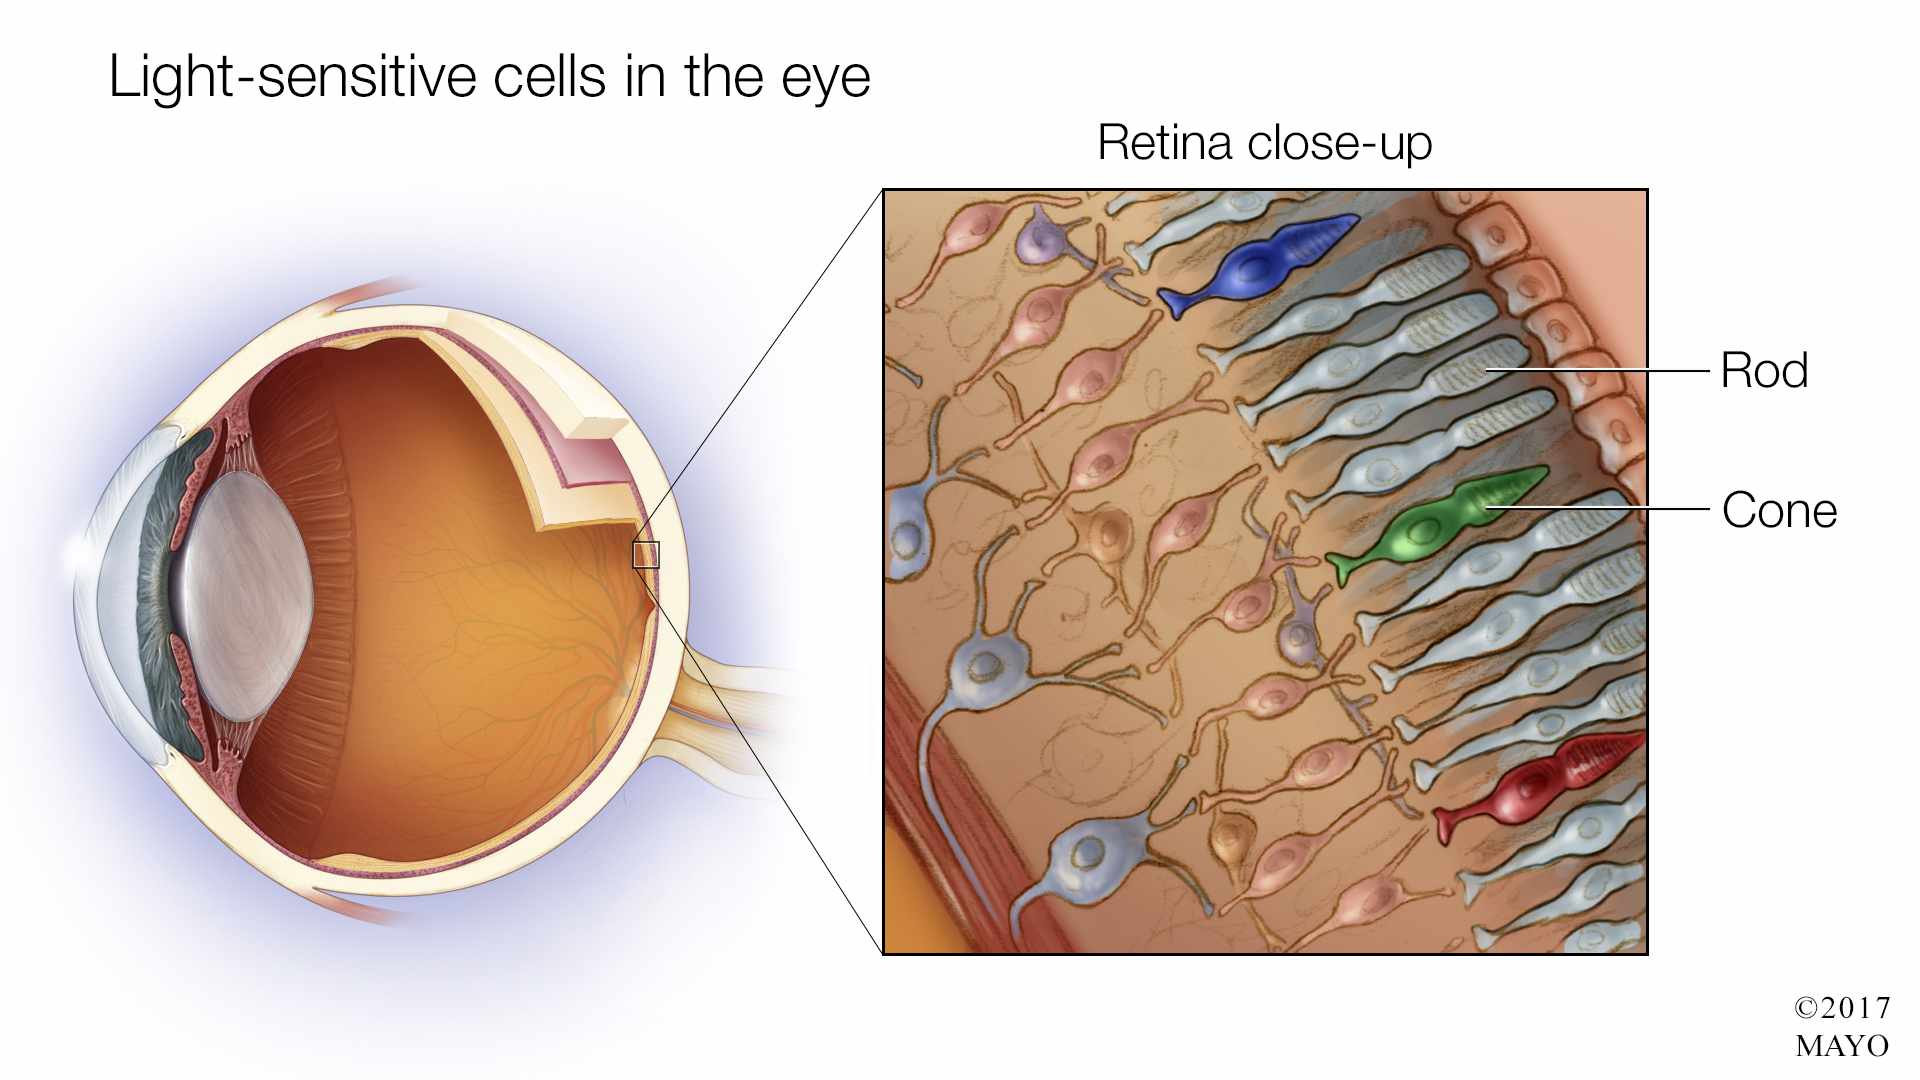 a medical illustration of light-sensitive cells in the eye with close-up of the retina, rods and cones